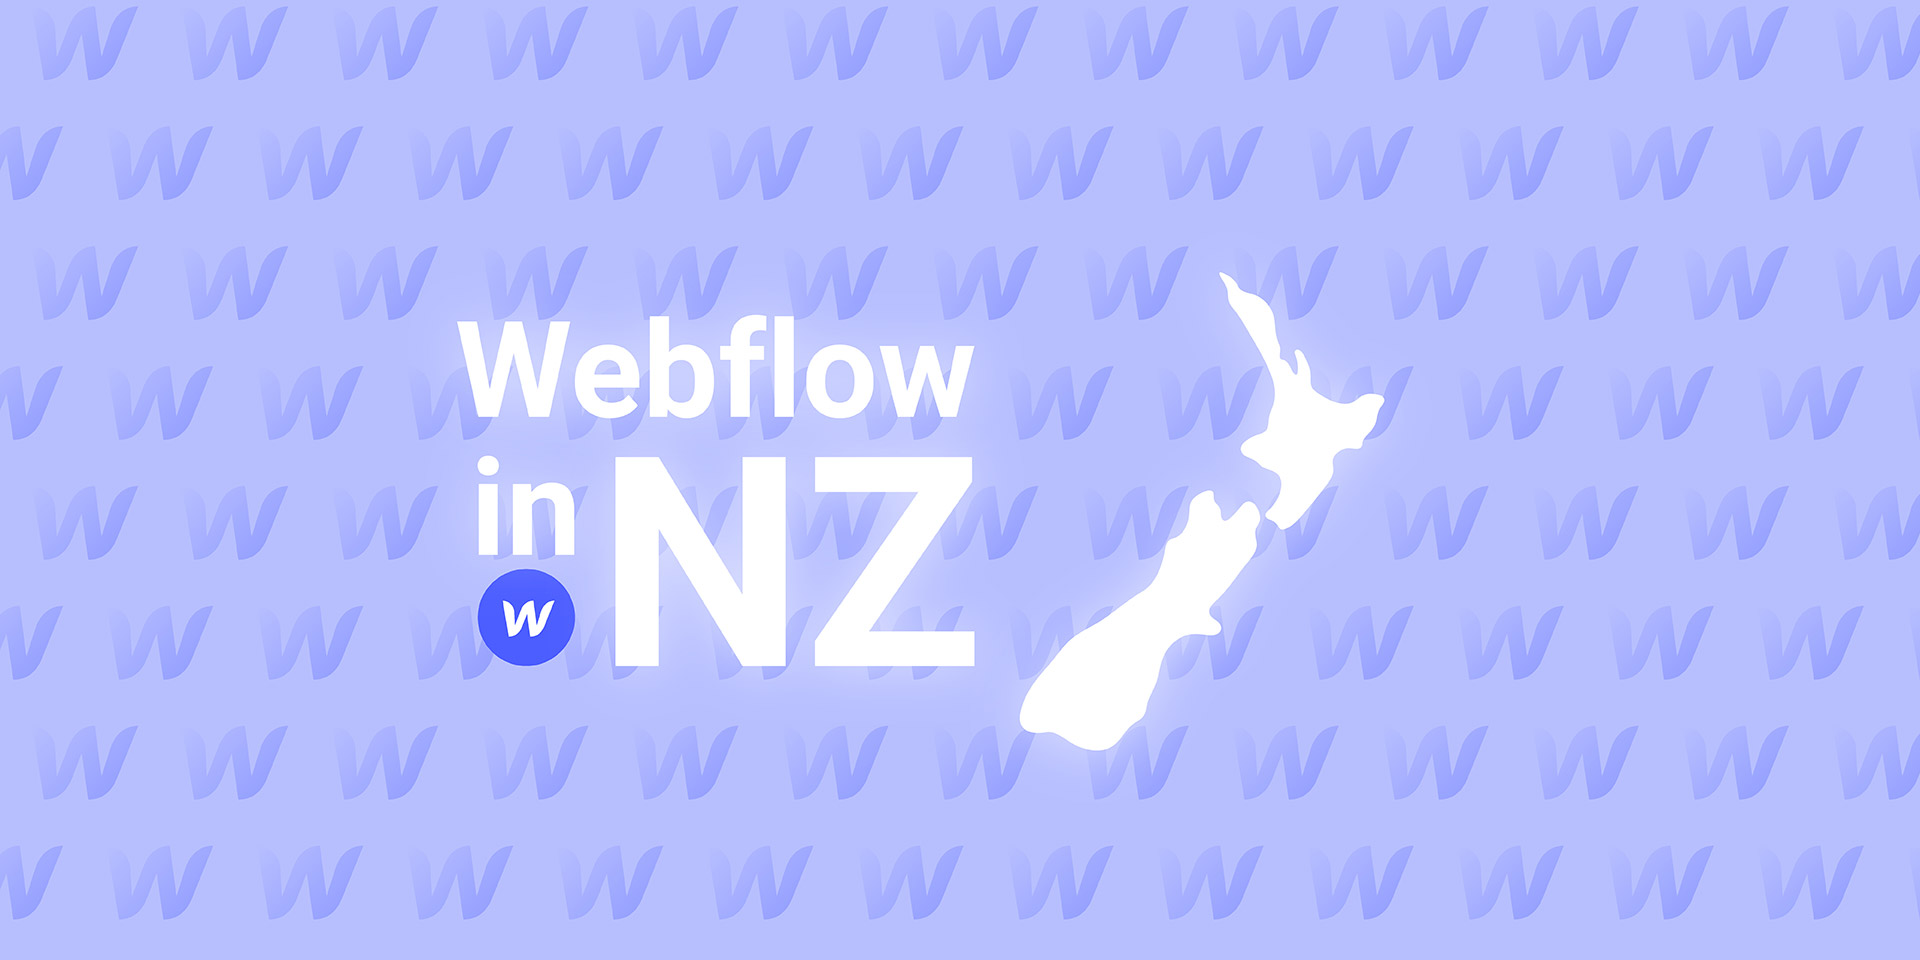 Webflow in NZ and a map of new zealand